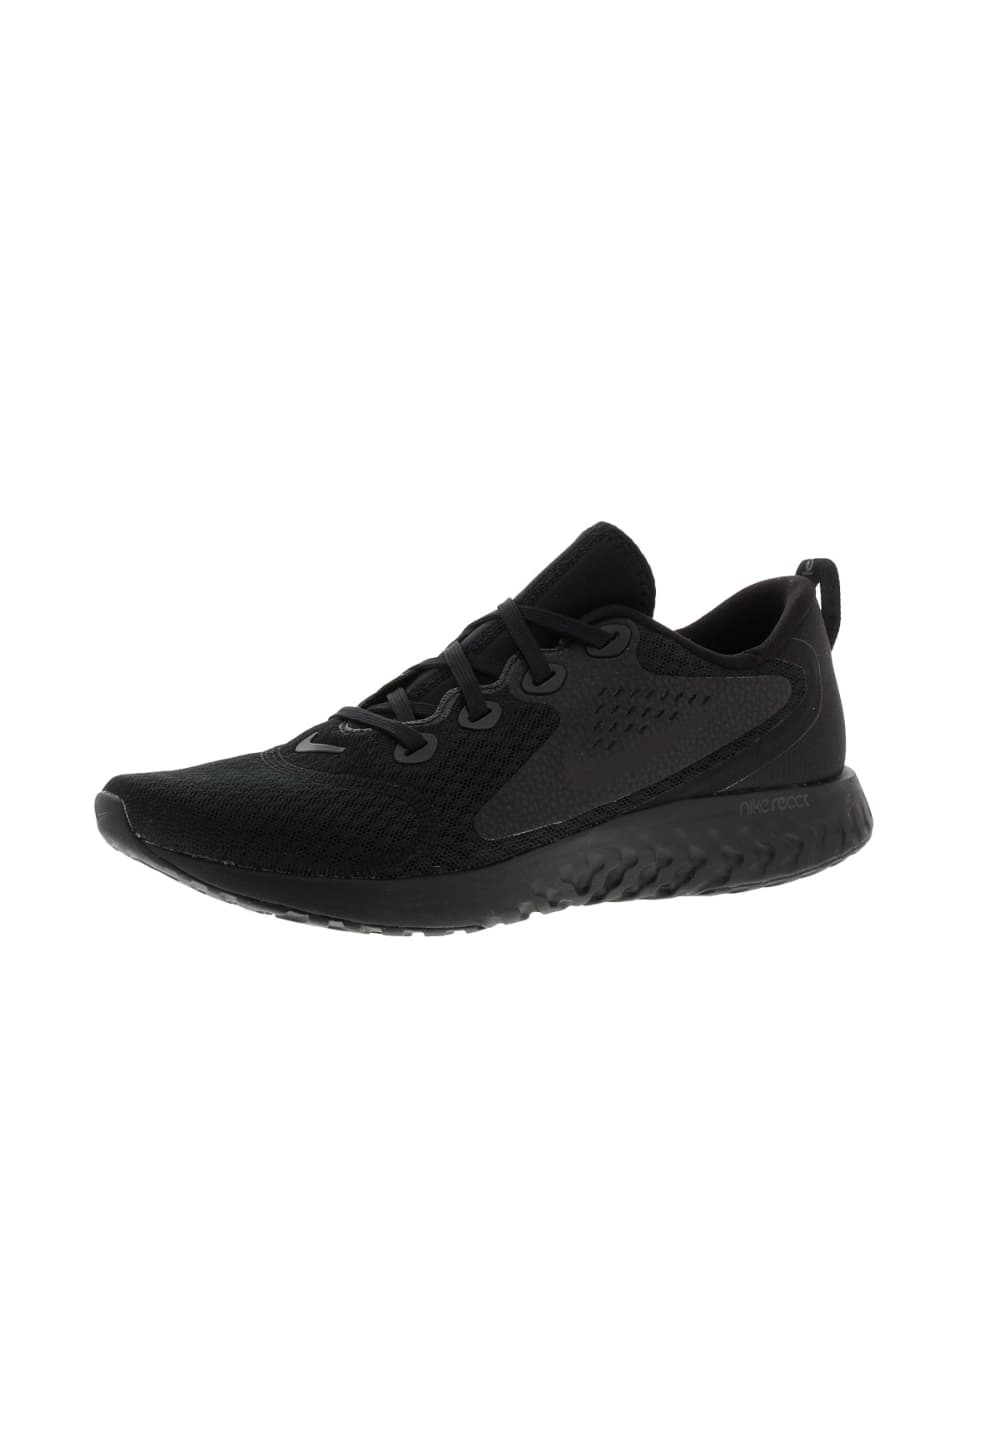 7dc802dfc50f2 Previous. Next. -32%. Nike. Legend React - Running shoes for Men